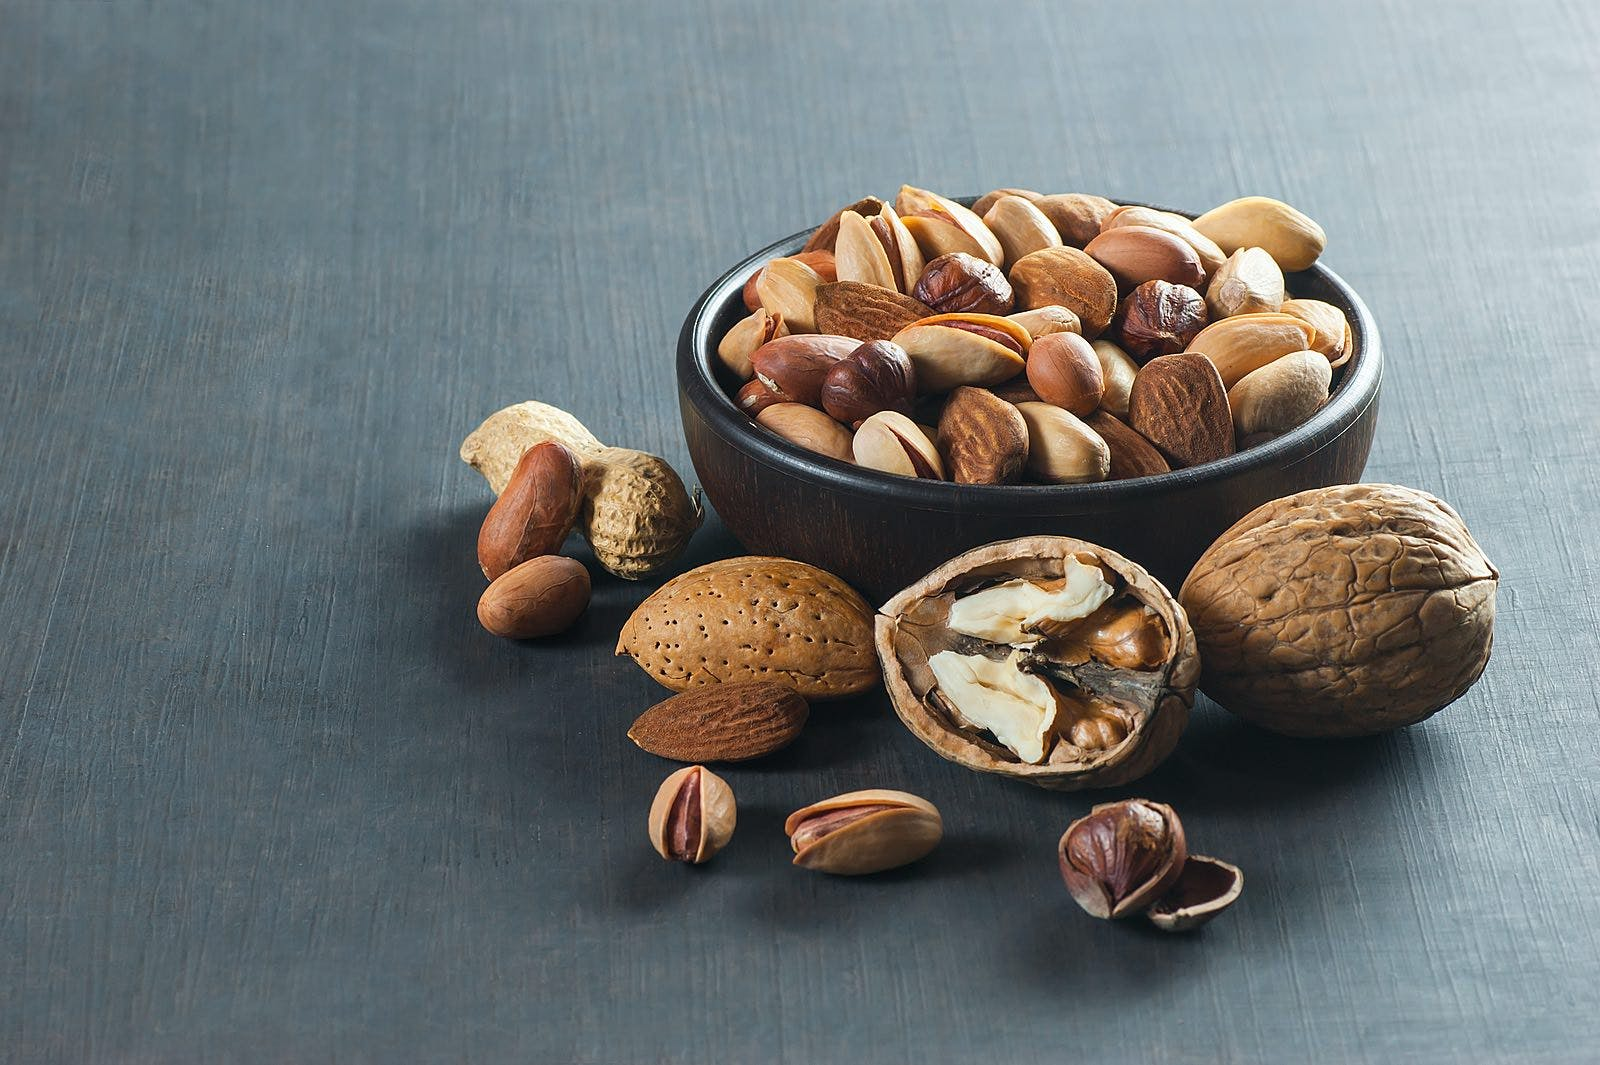 Nuts mix dried fruits in bowl, different kind of nut, healthy food on wooden table. Walnut, hazelnut, pistachio, peanut, almond. Assorted nuts concept